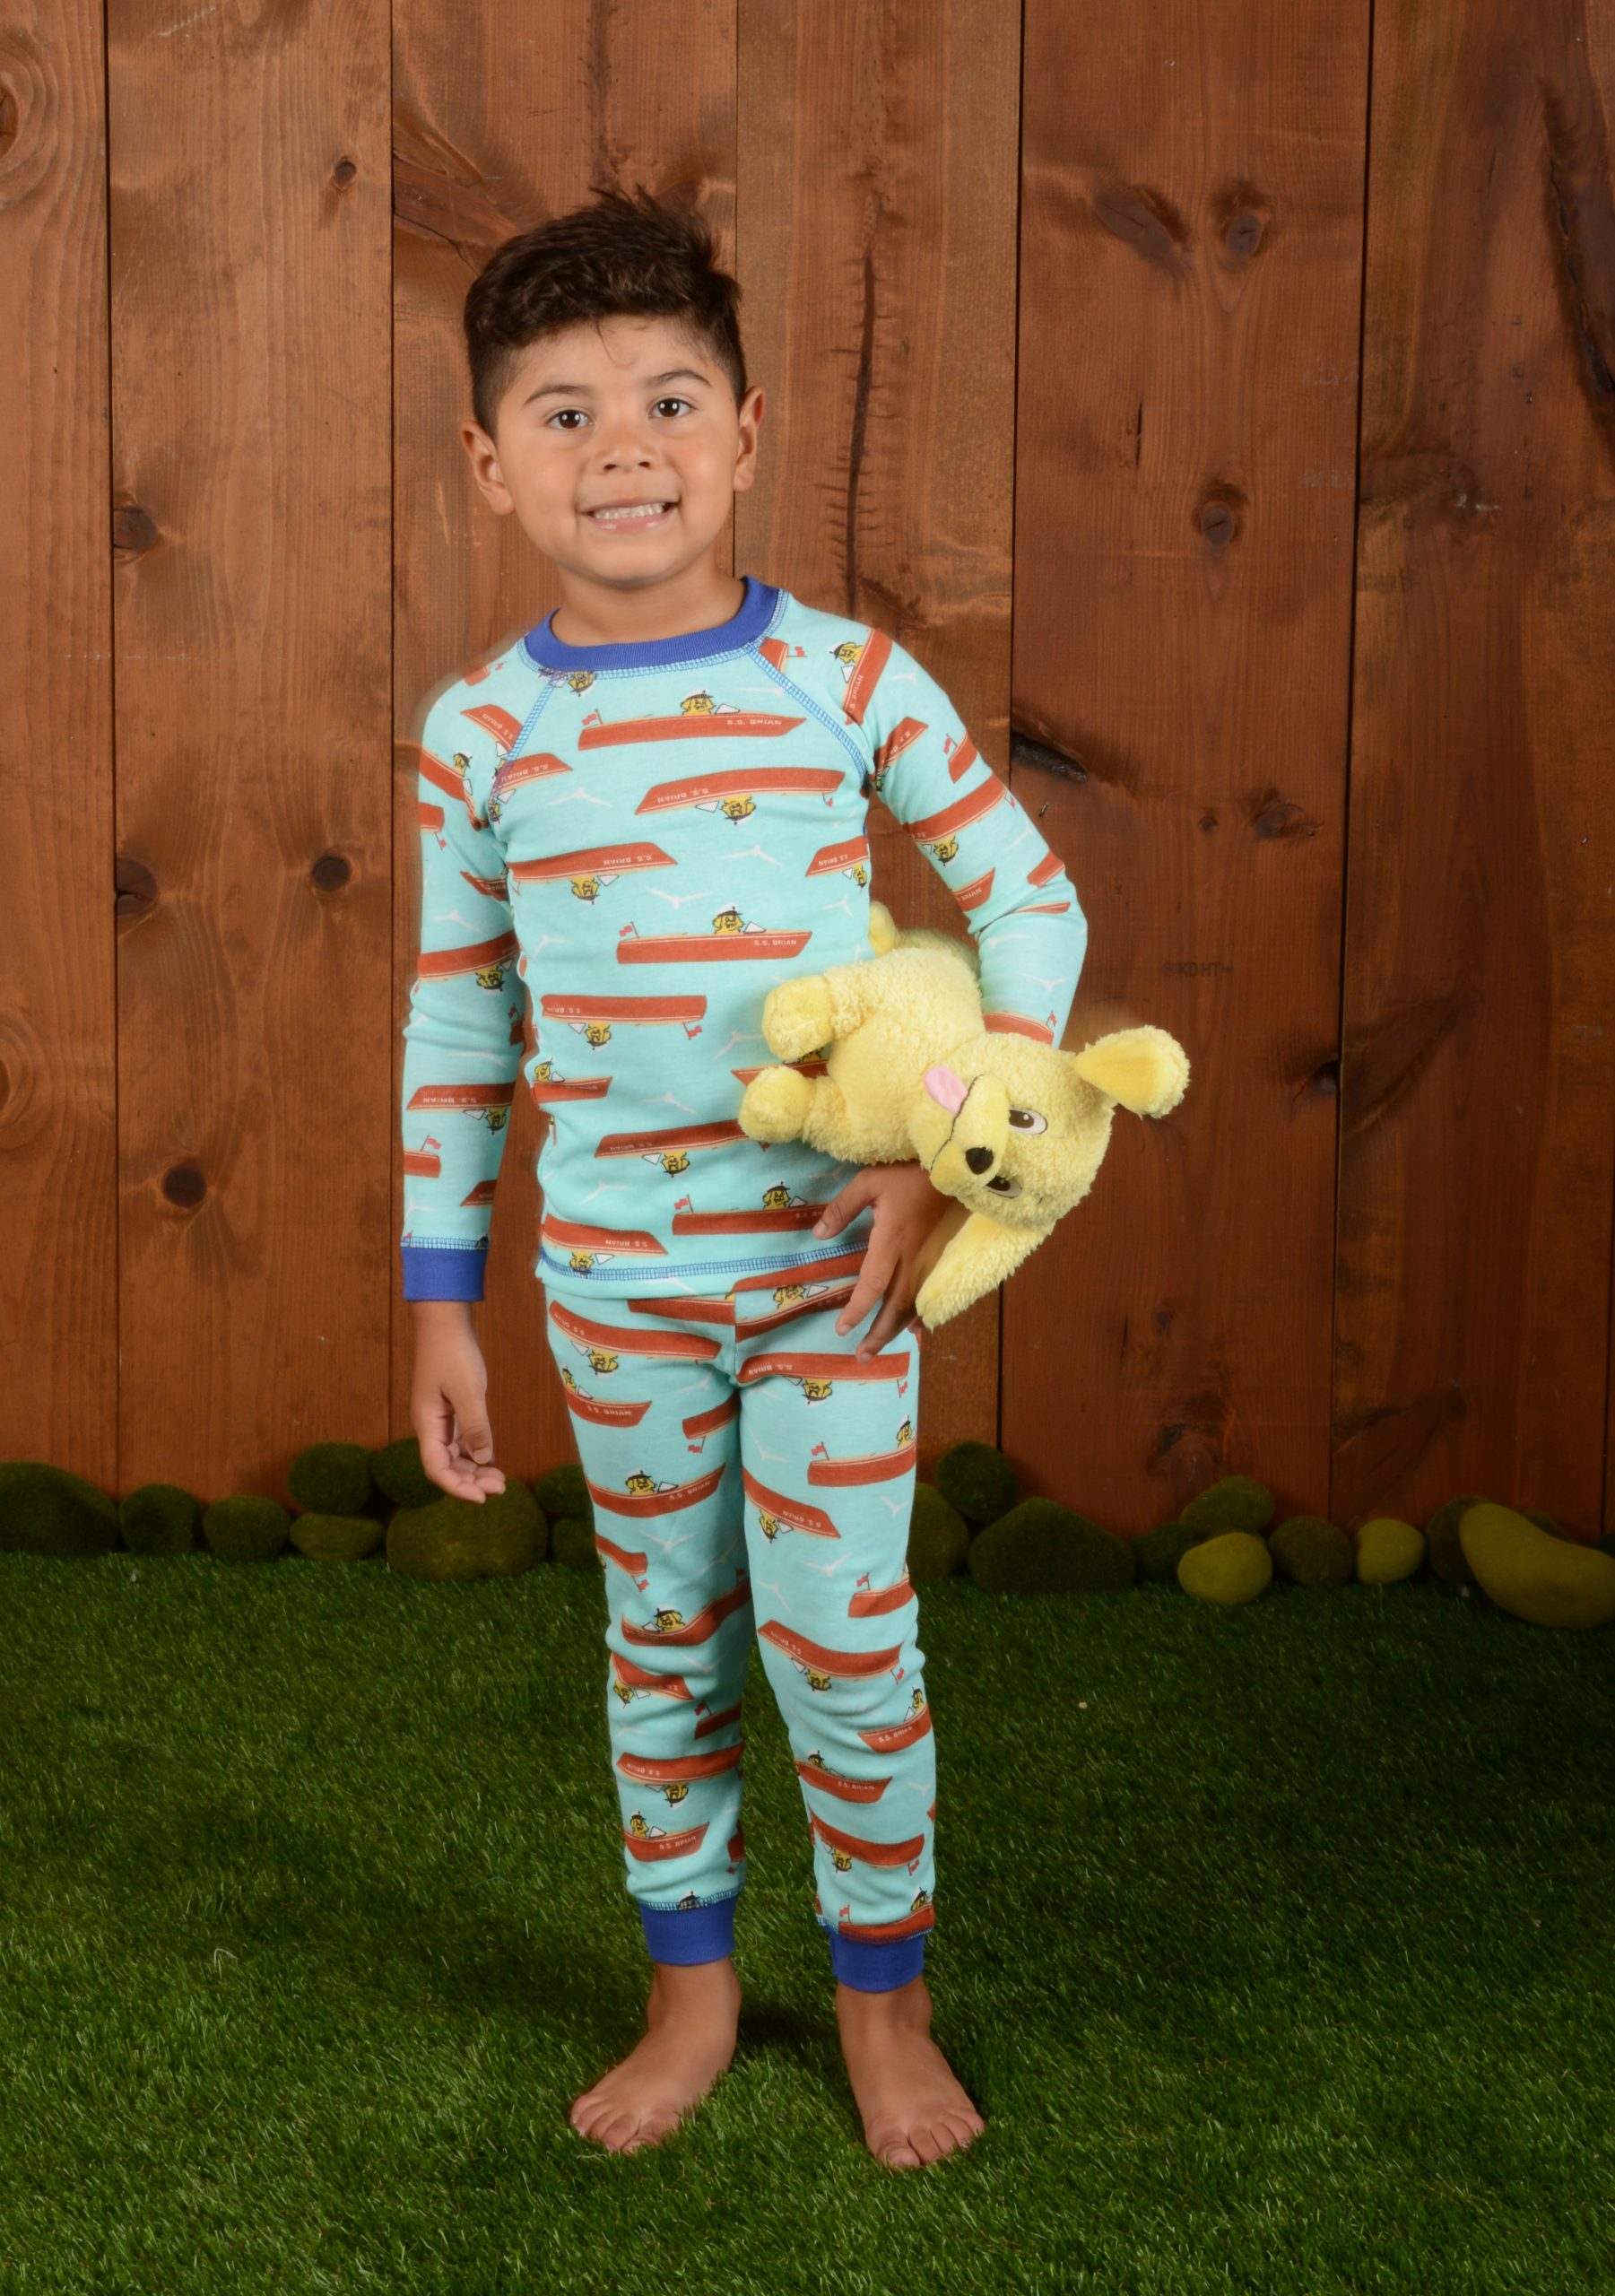 boy with boat print pajamas and plush toy